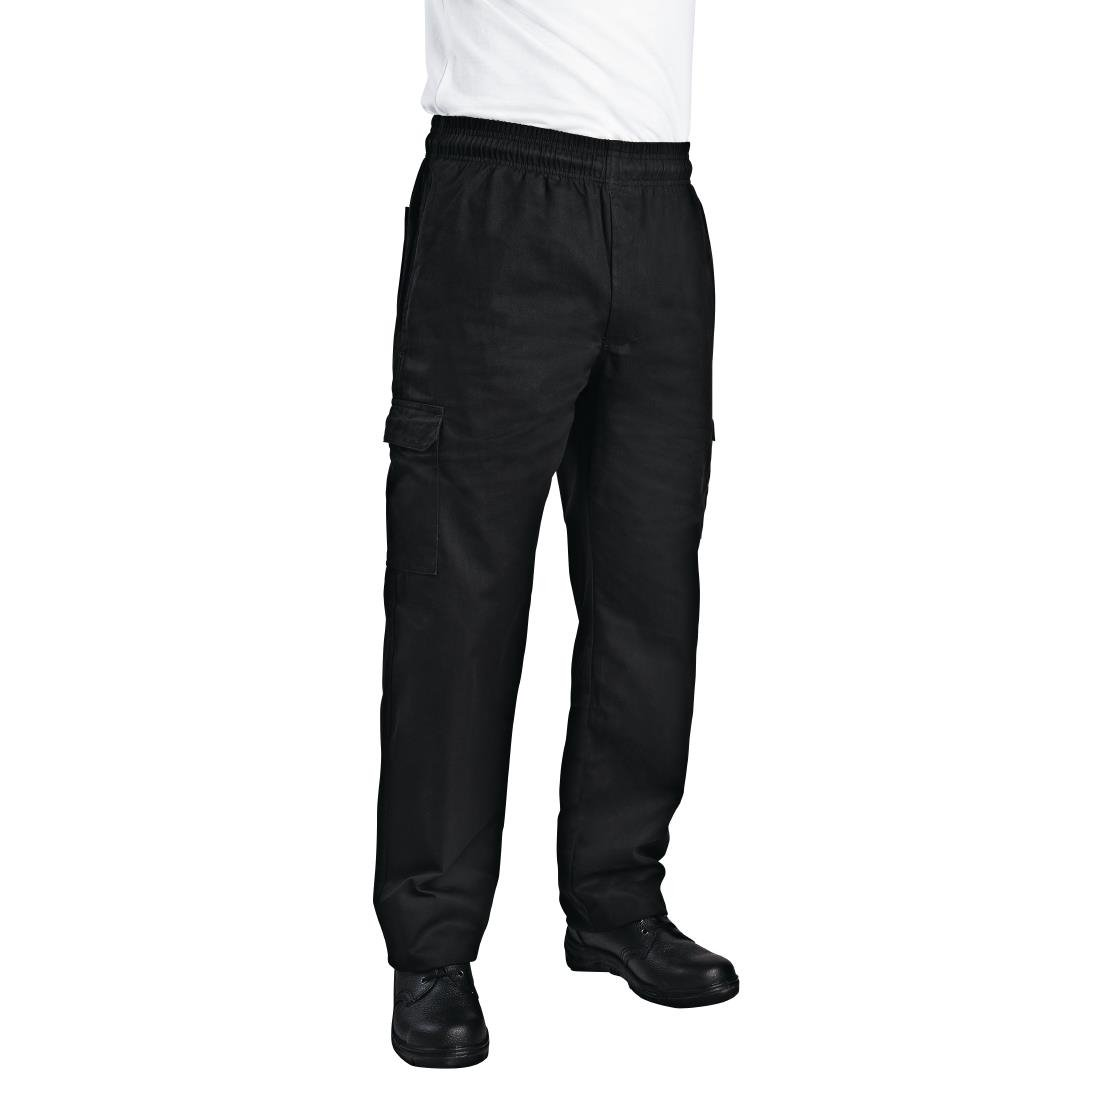 f9f580b19ce36c Chef Works Unisex Slim Fit Cargo Chefs Trousers Black - P_B222 - Buy ...